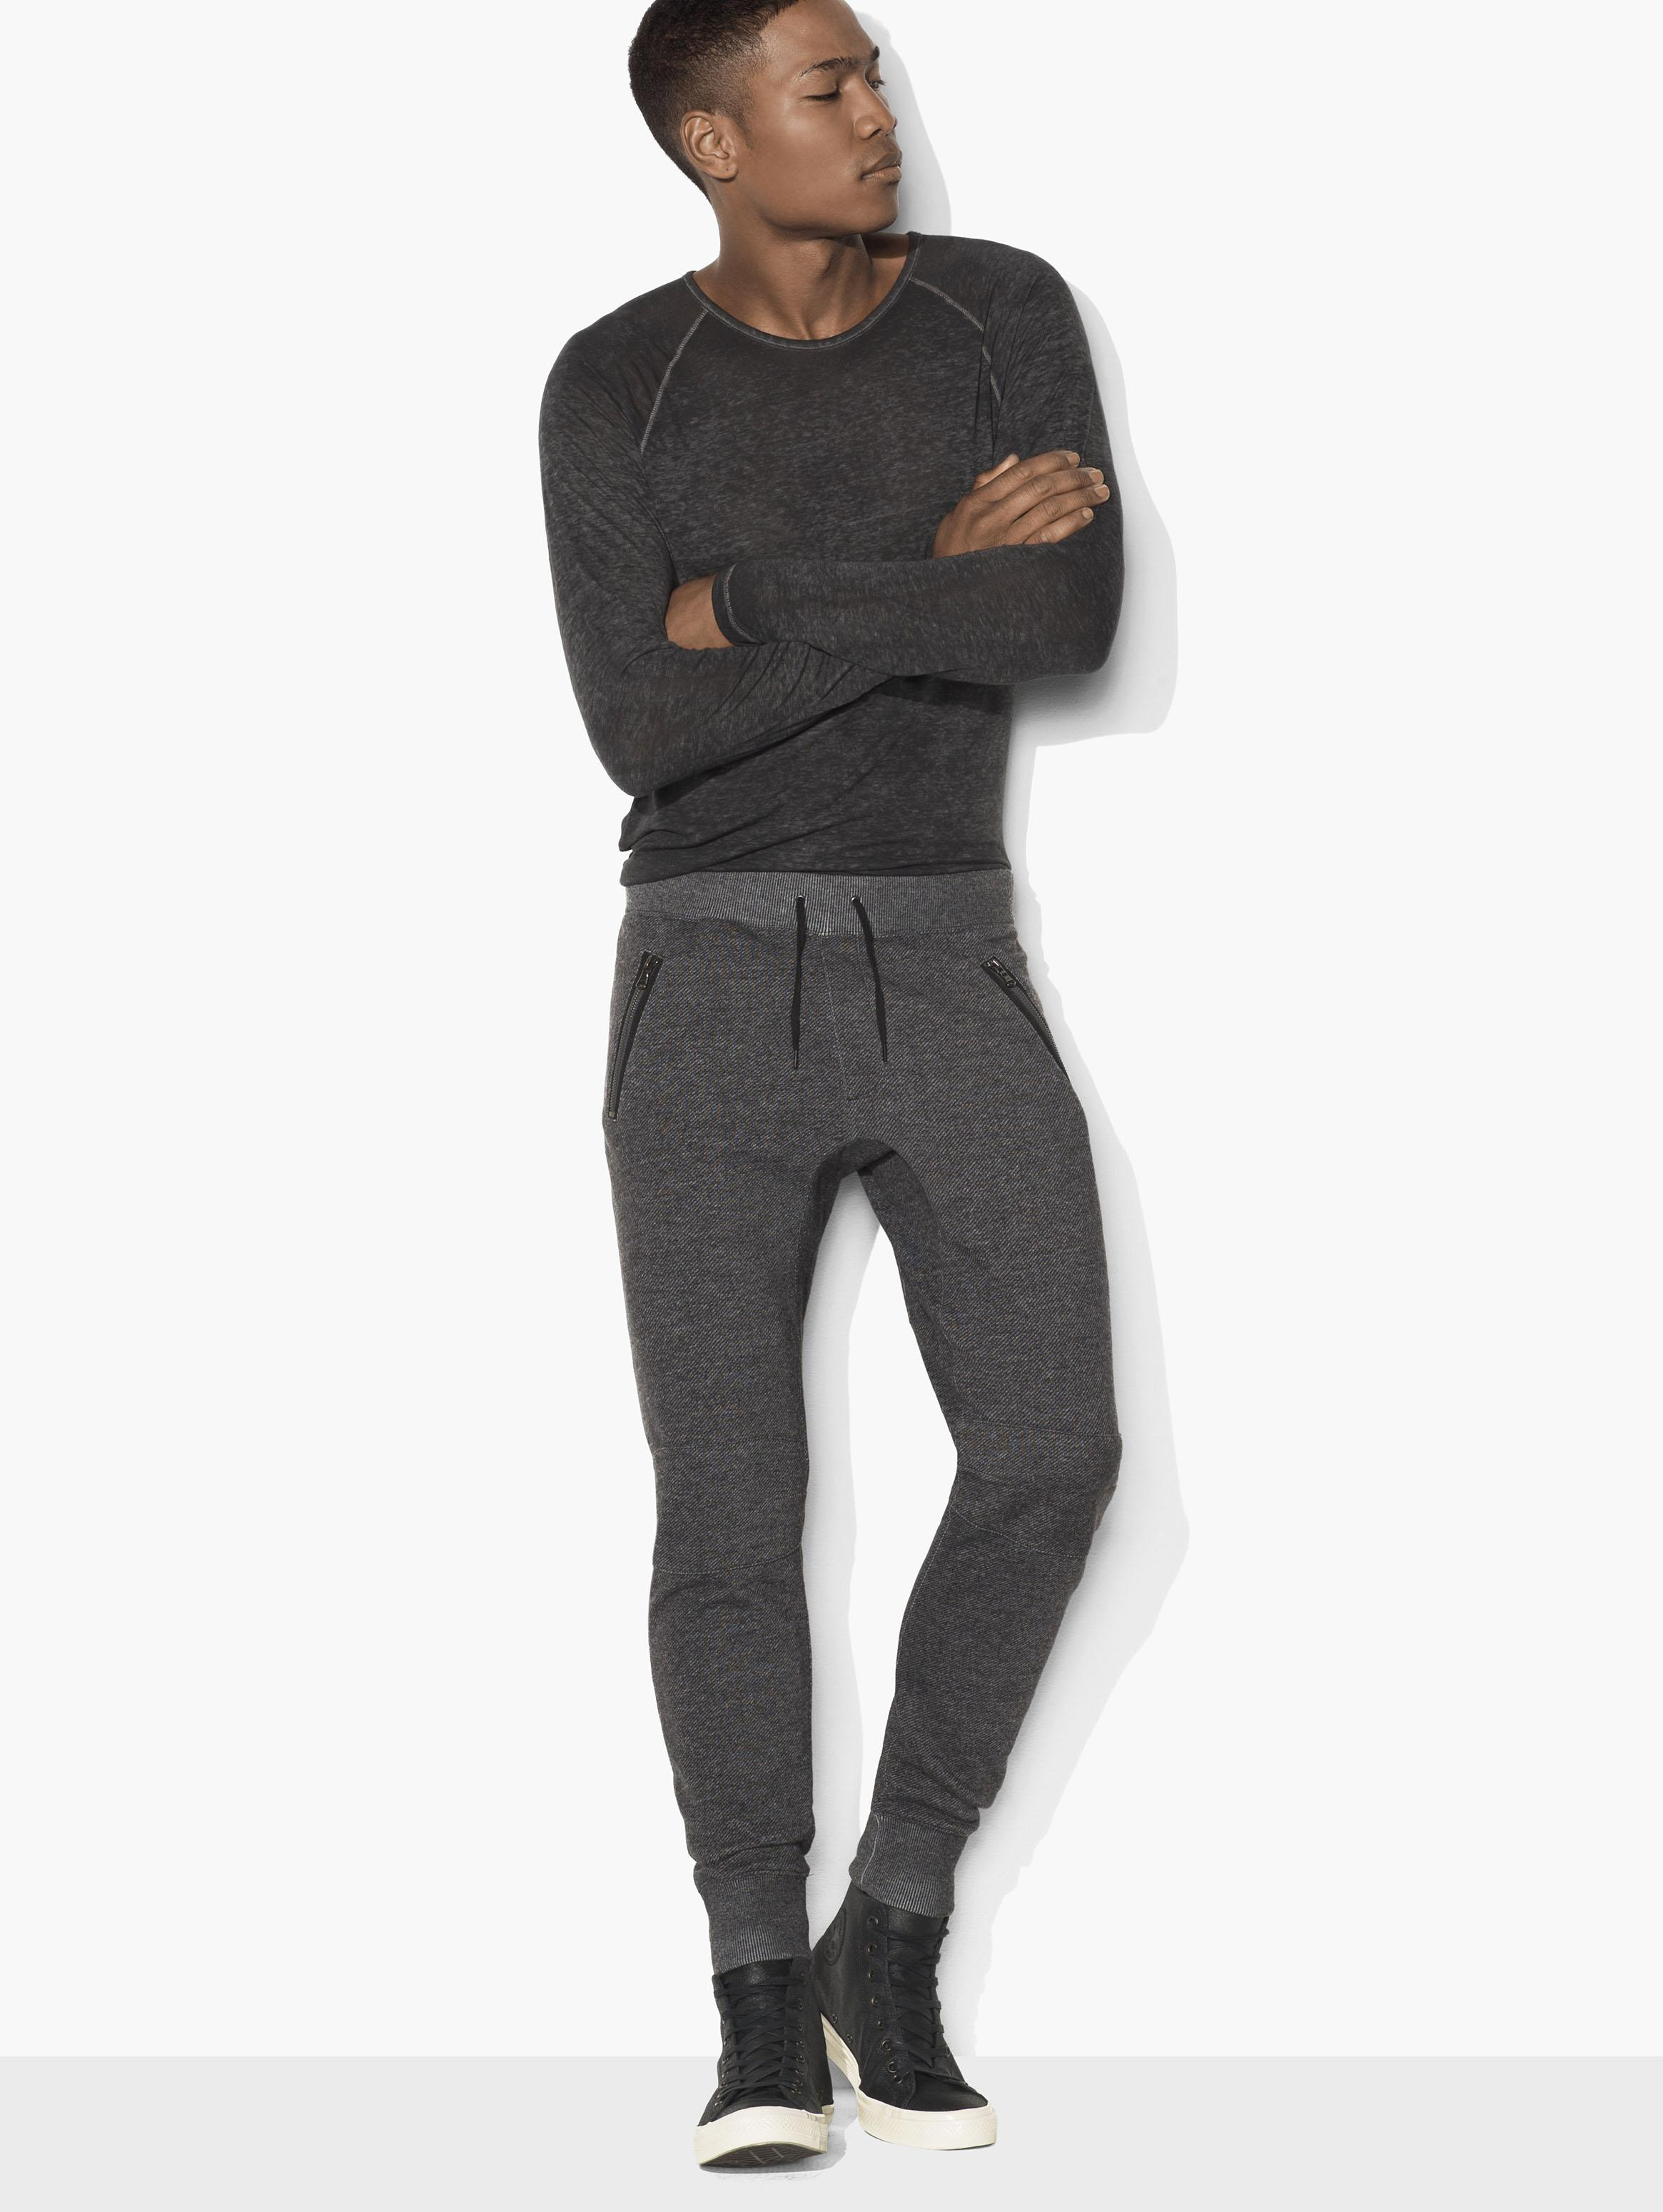 Marled Knit Sweatpants